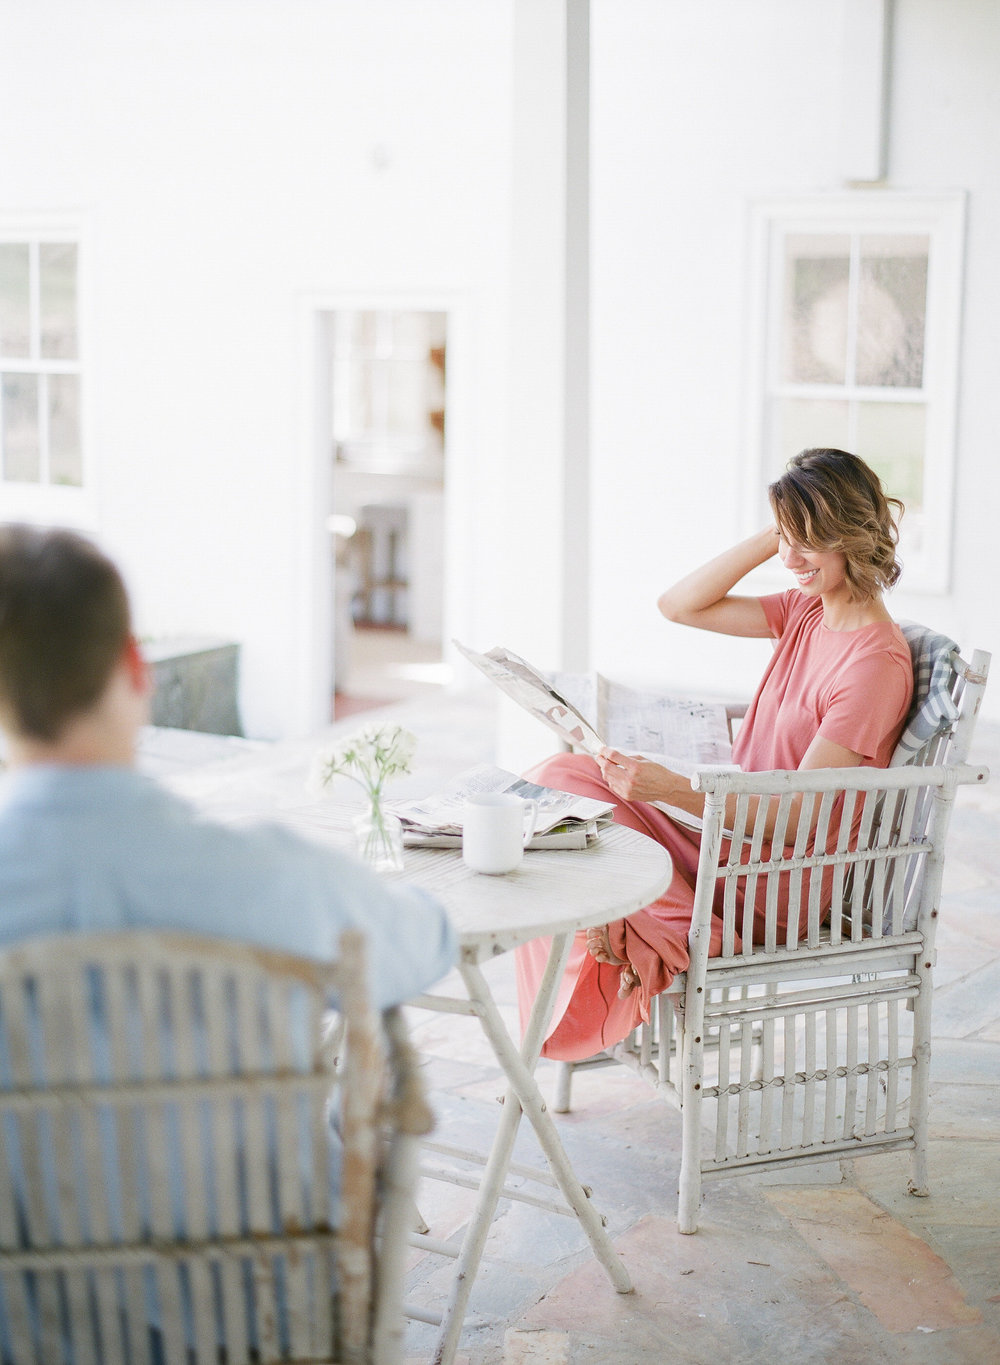 Fine_Art_Photographer_Kristen_Lynne_Photography_Engagement-Photo-24.jpg